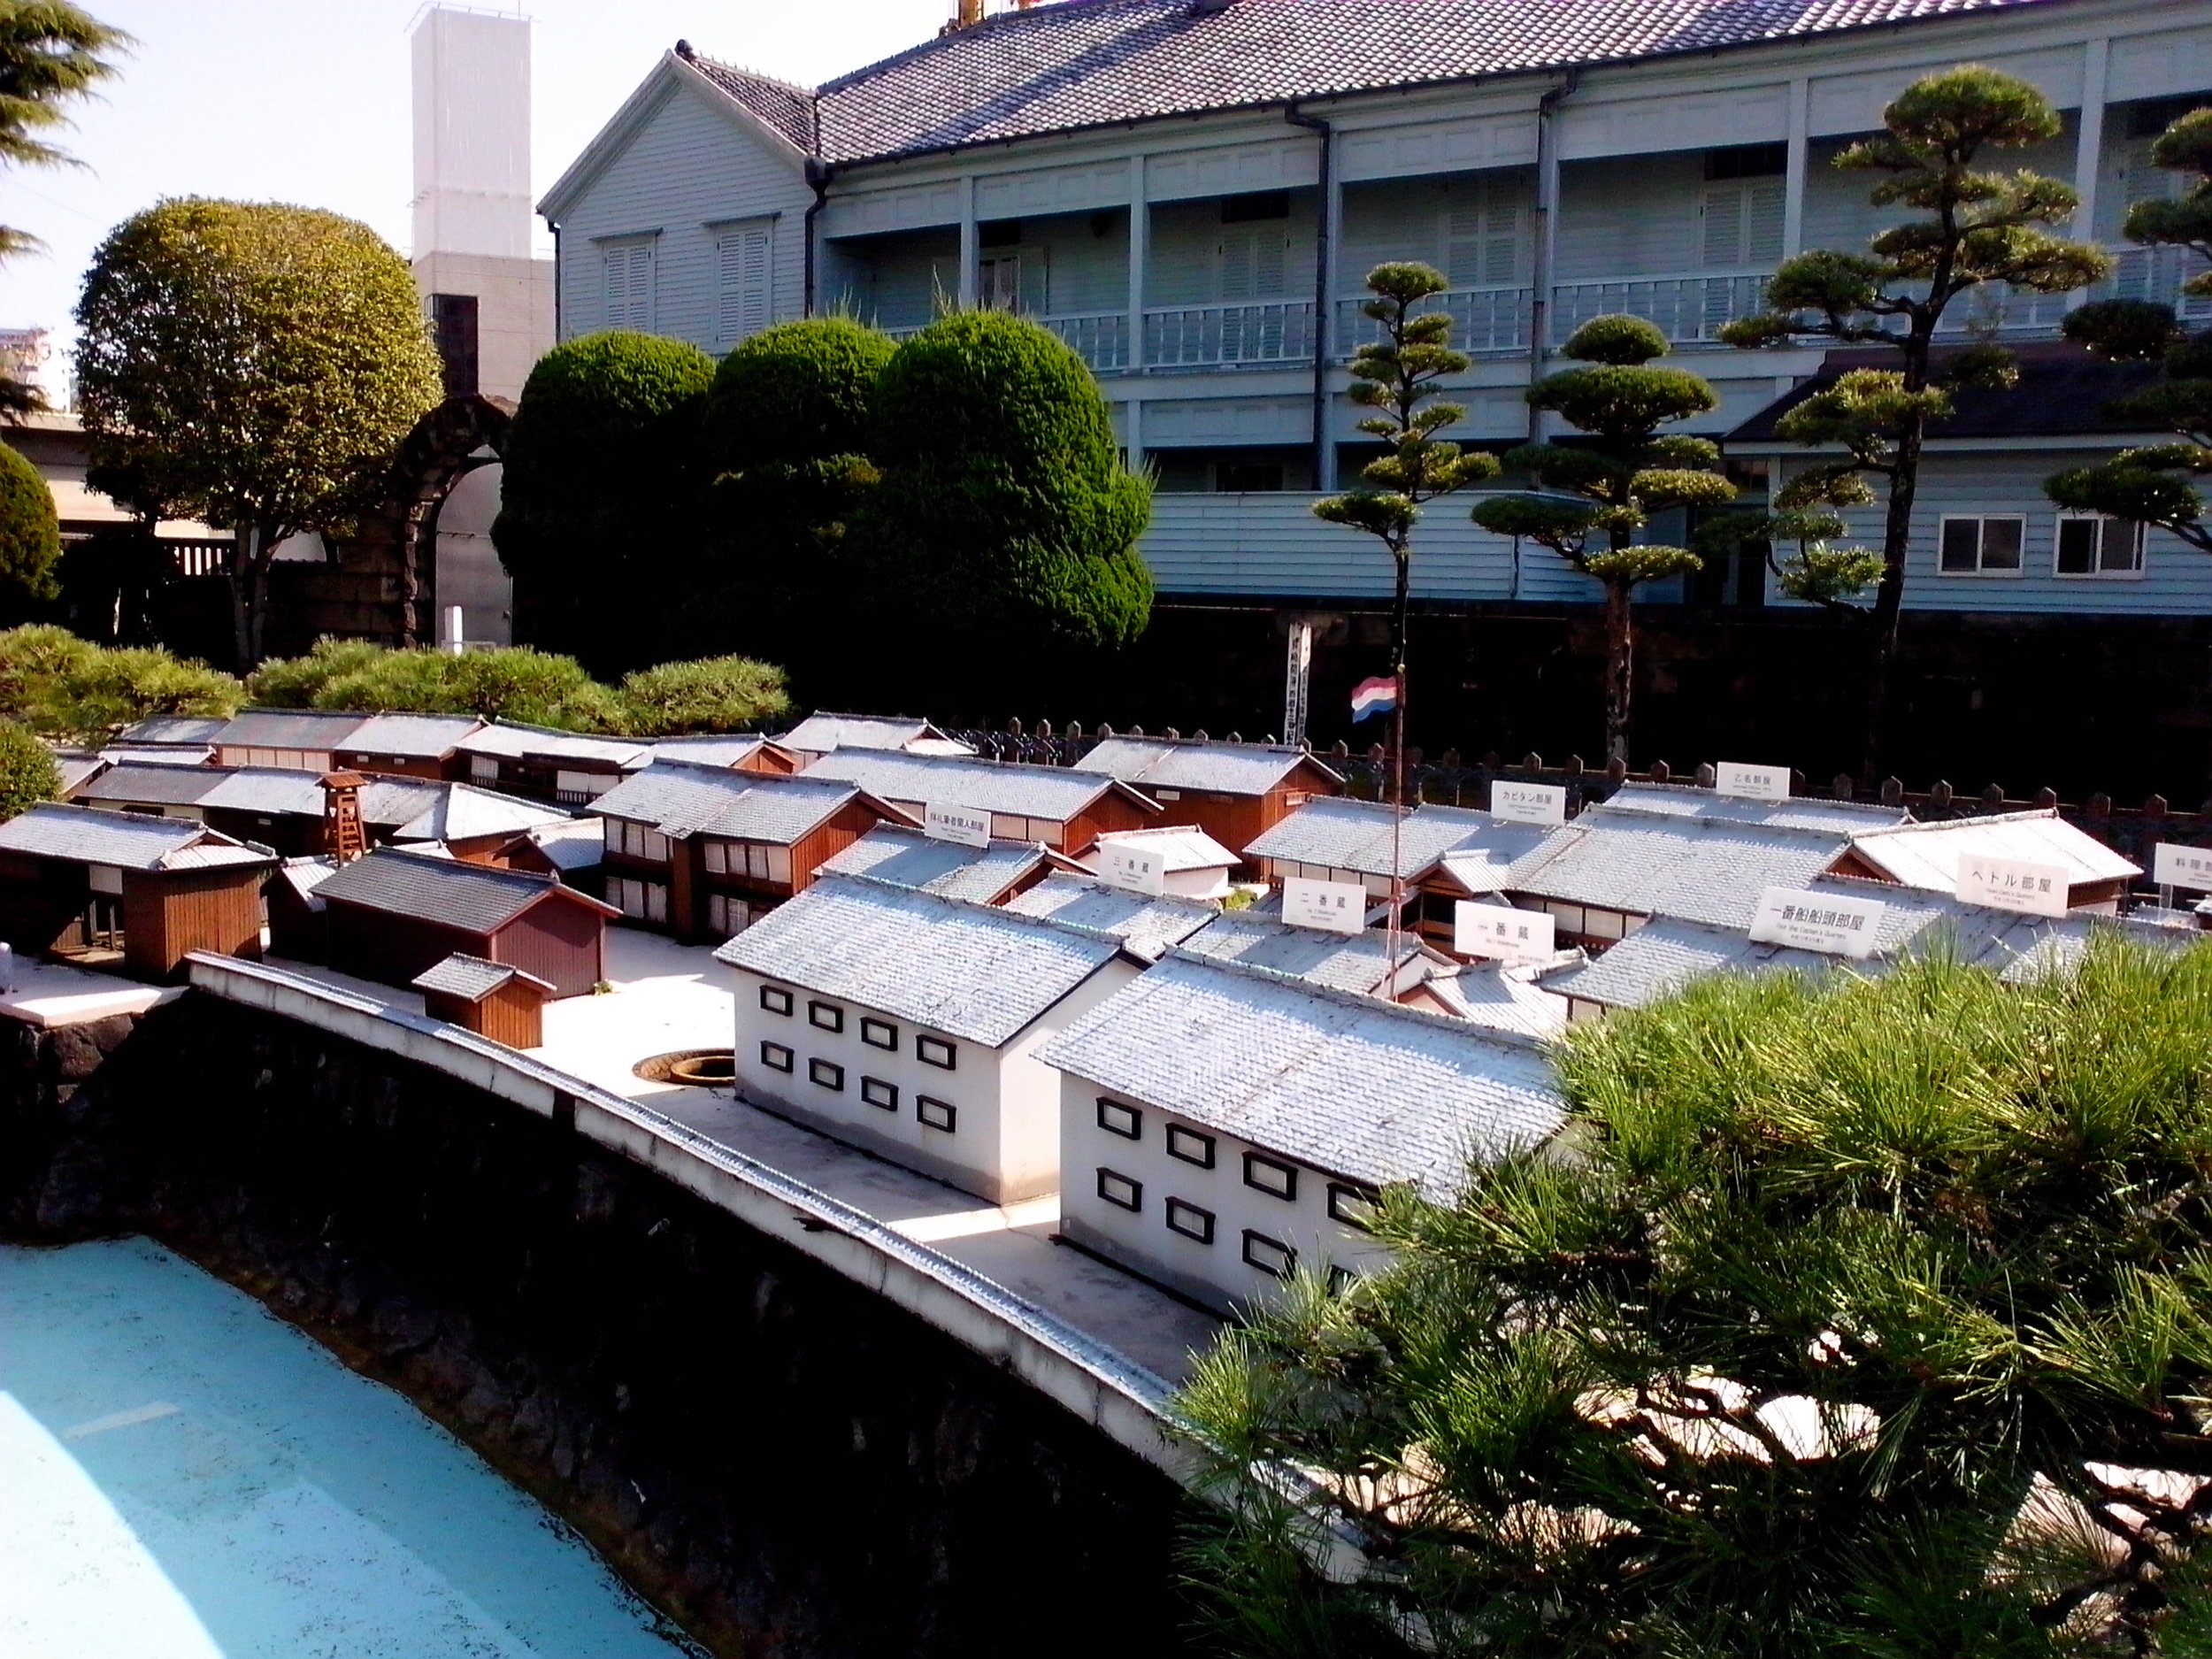 A model of Dejima Island in Nagasaki